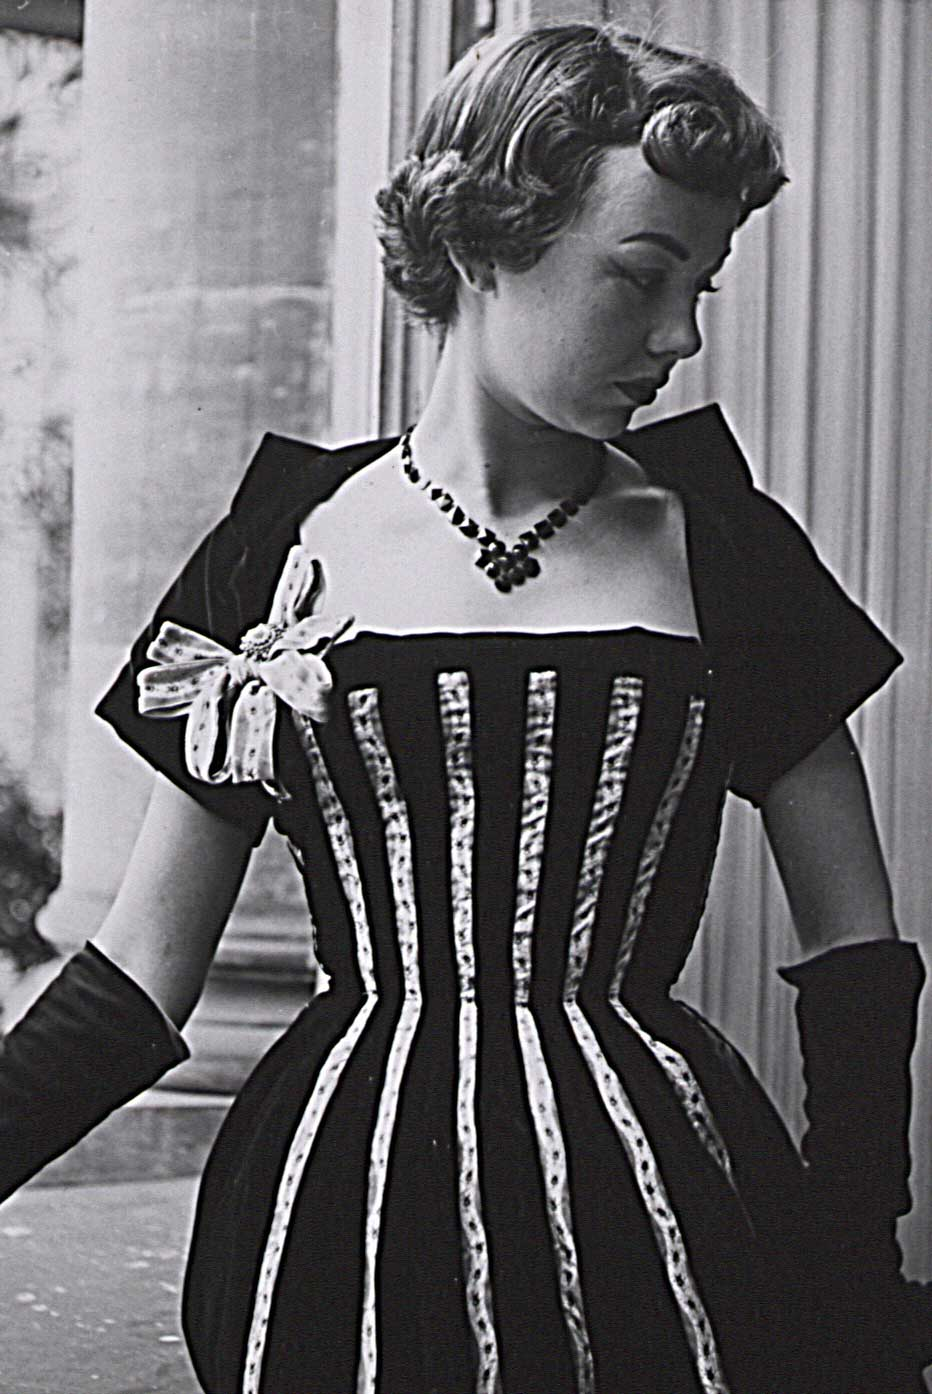 A black velvet dress with silk ribbons, fashion photography by Seiler & Co, s.d. © Museum.BL, Liestal